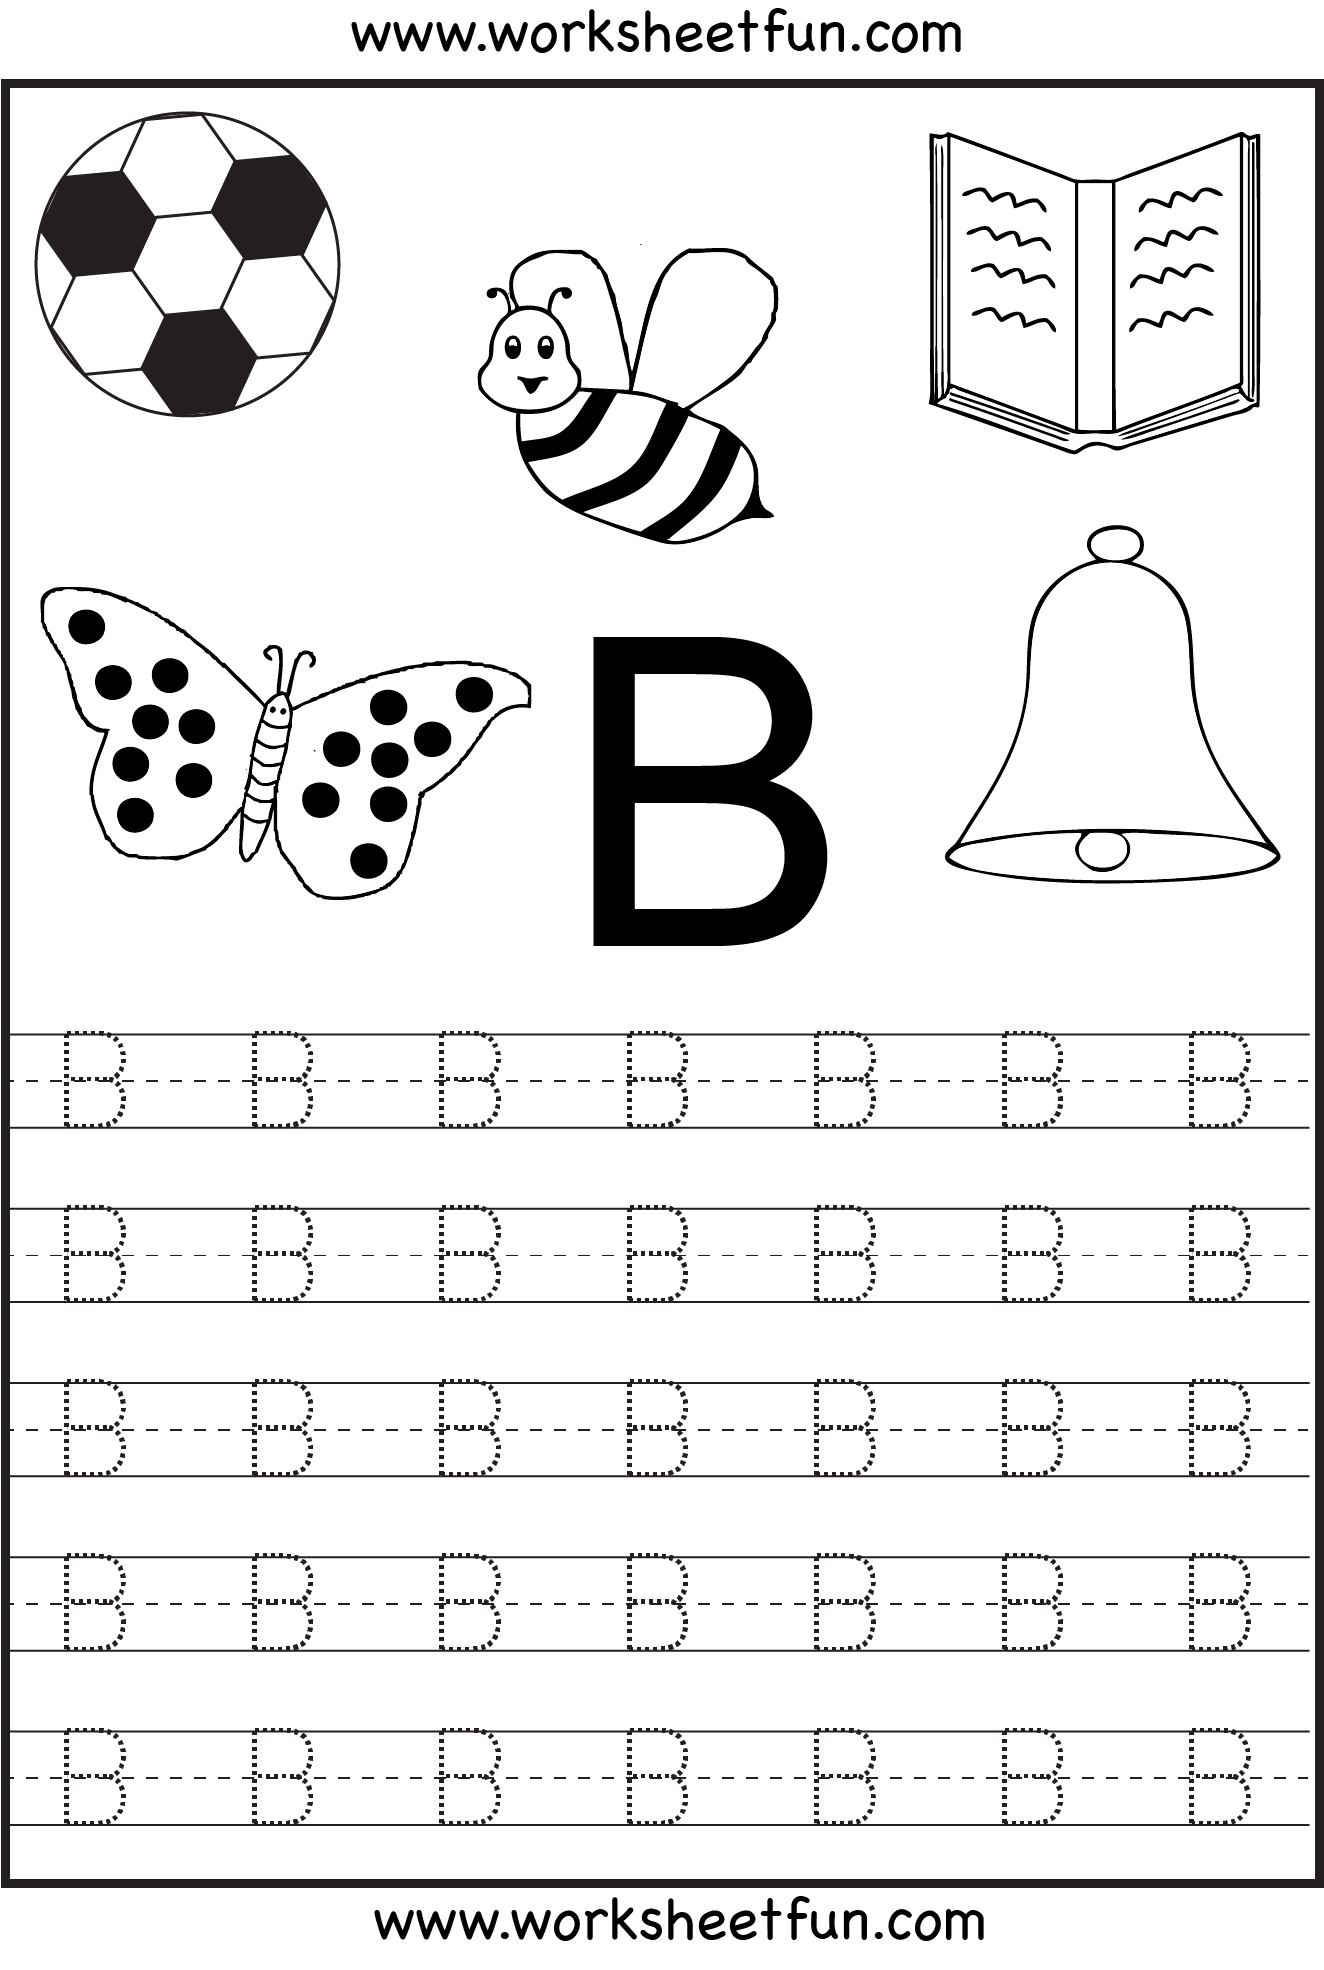 Printables Letter B Worksheets kindergarten letter b writing practice worksheet printable free tracing worksheets for 26 worksheets